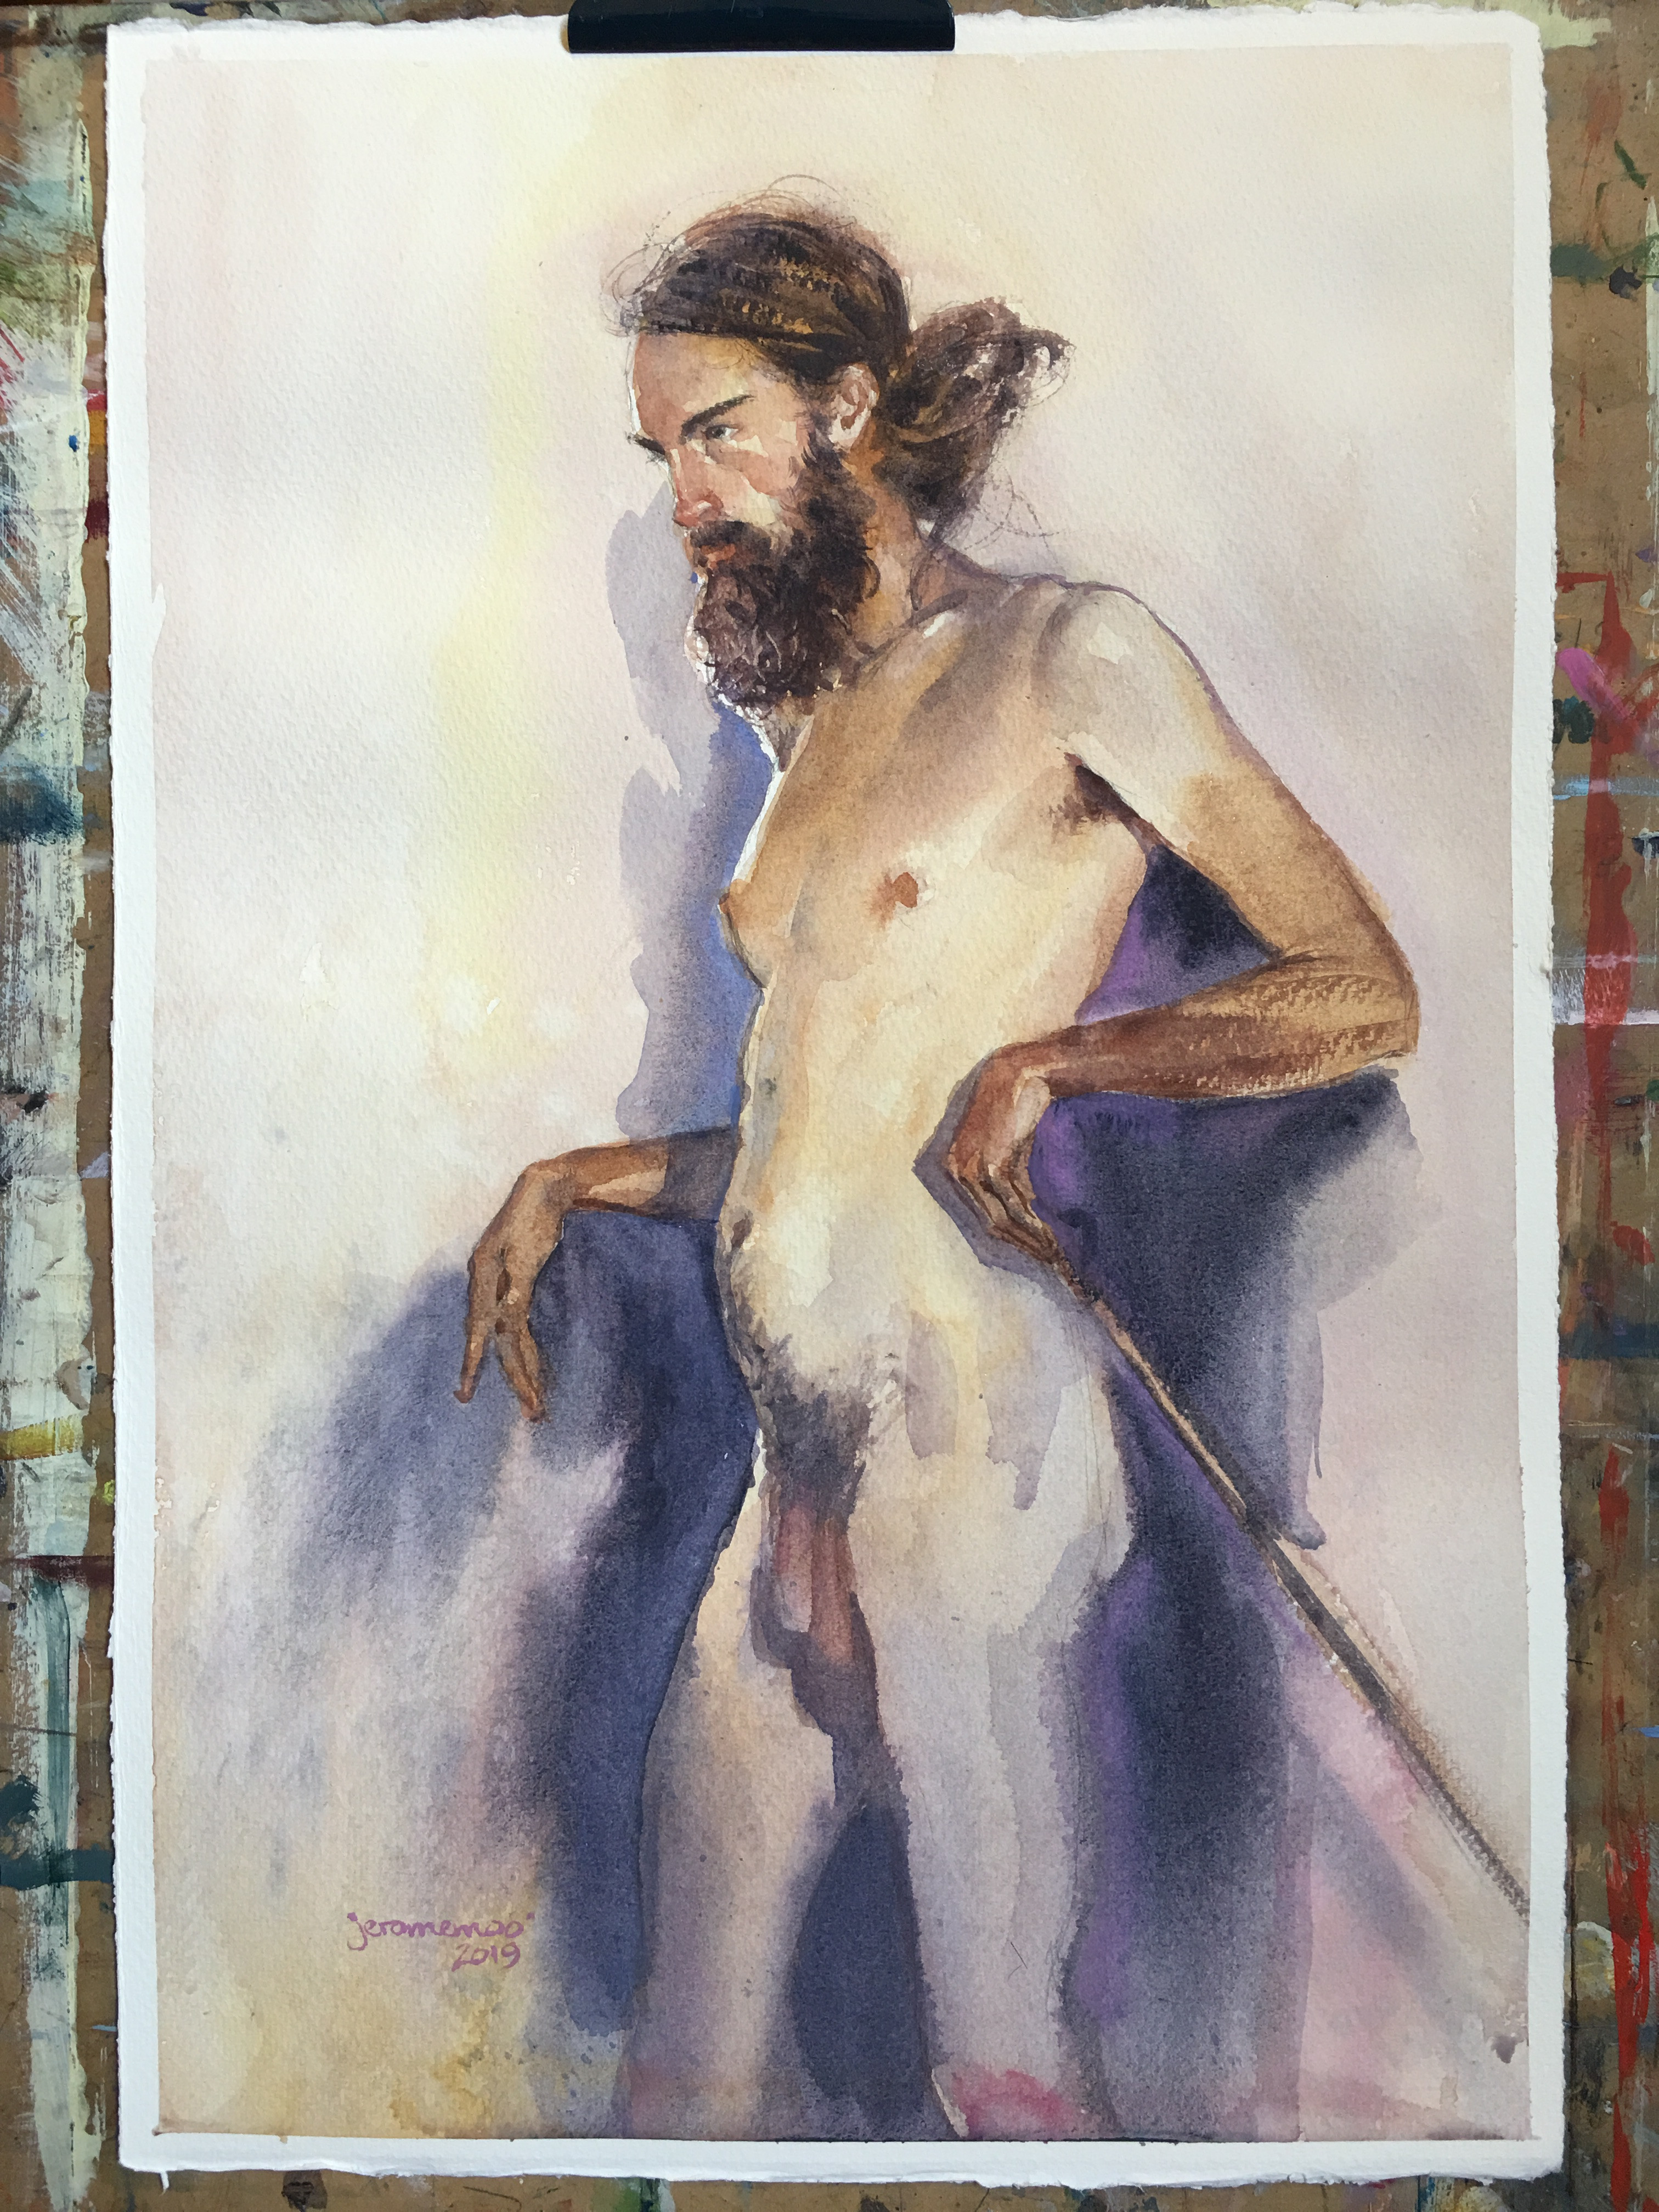 Long Pose Life Drawing of Jesse  Watercolour on 28x38cm 425gsm Rough Saunders Waterford Watercolour Paper